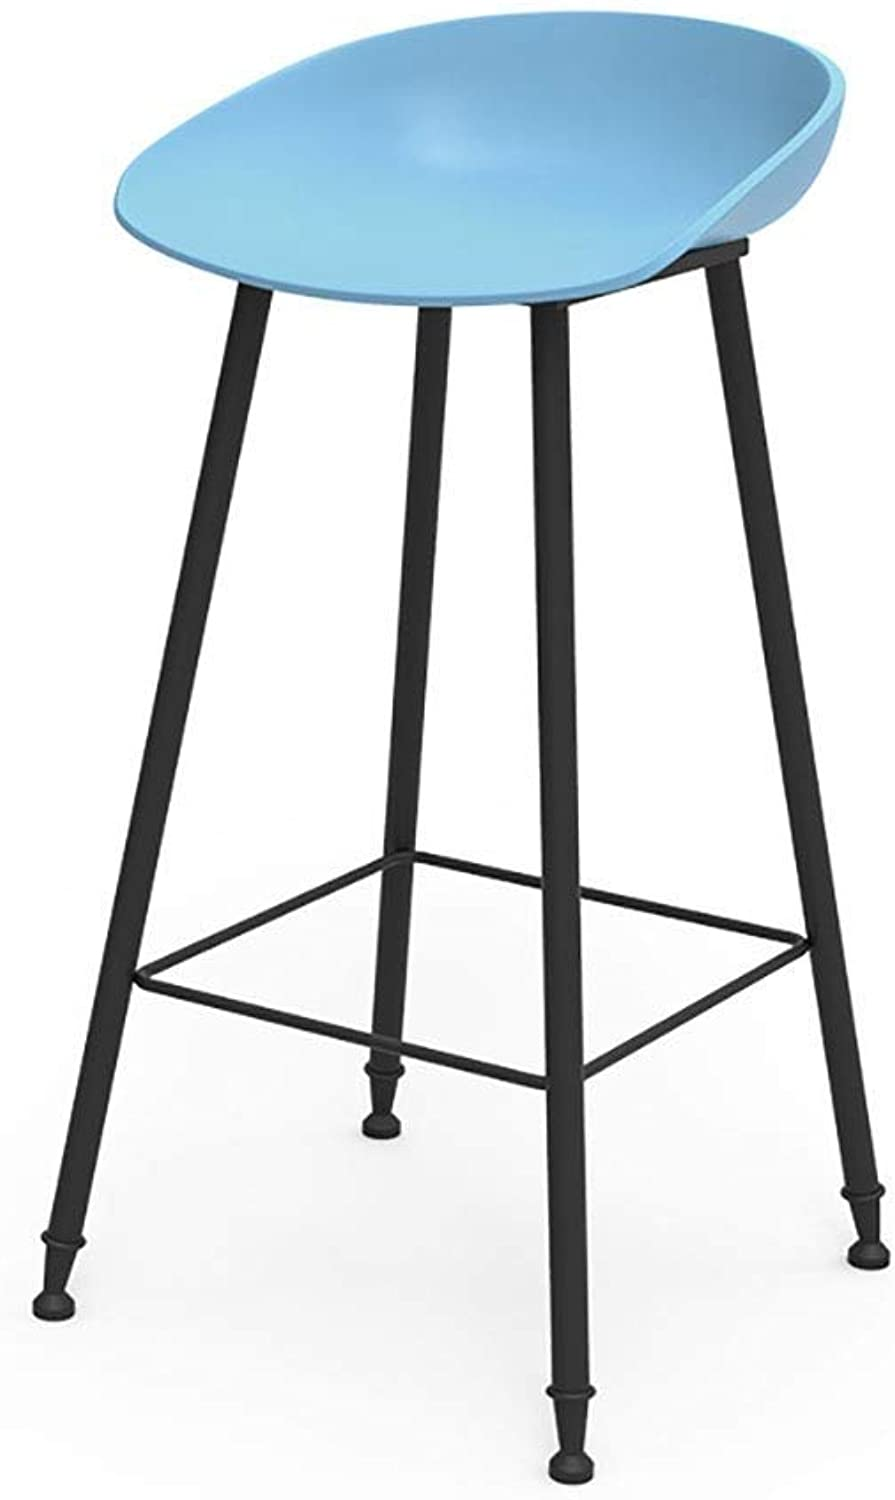 Bar Stool Metal Legs,Fixed Height Barstool,Black Matte Resin Seat, Office,Coffee House,Home,Restaurant LEBAO (Size   bluee)